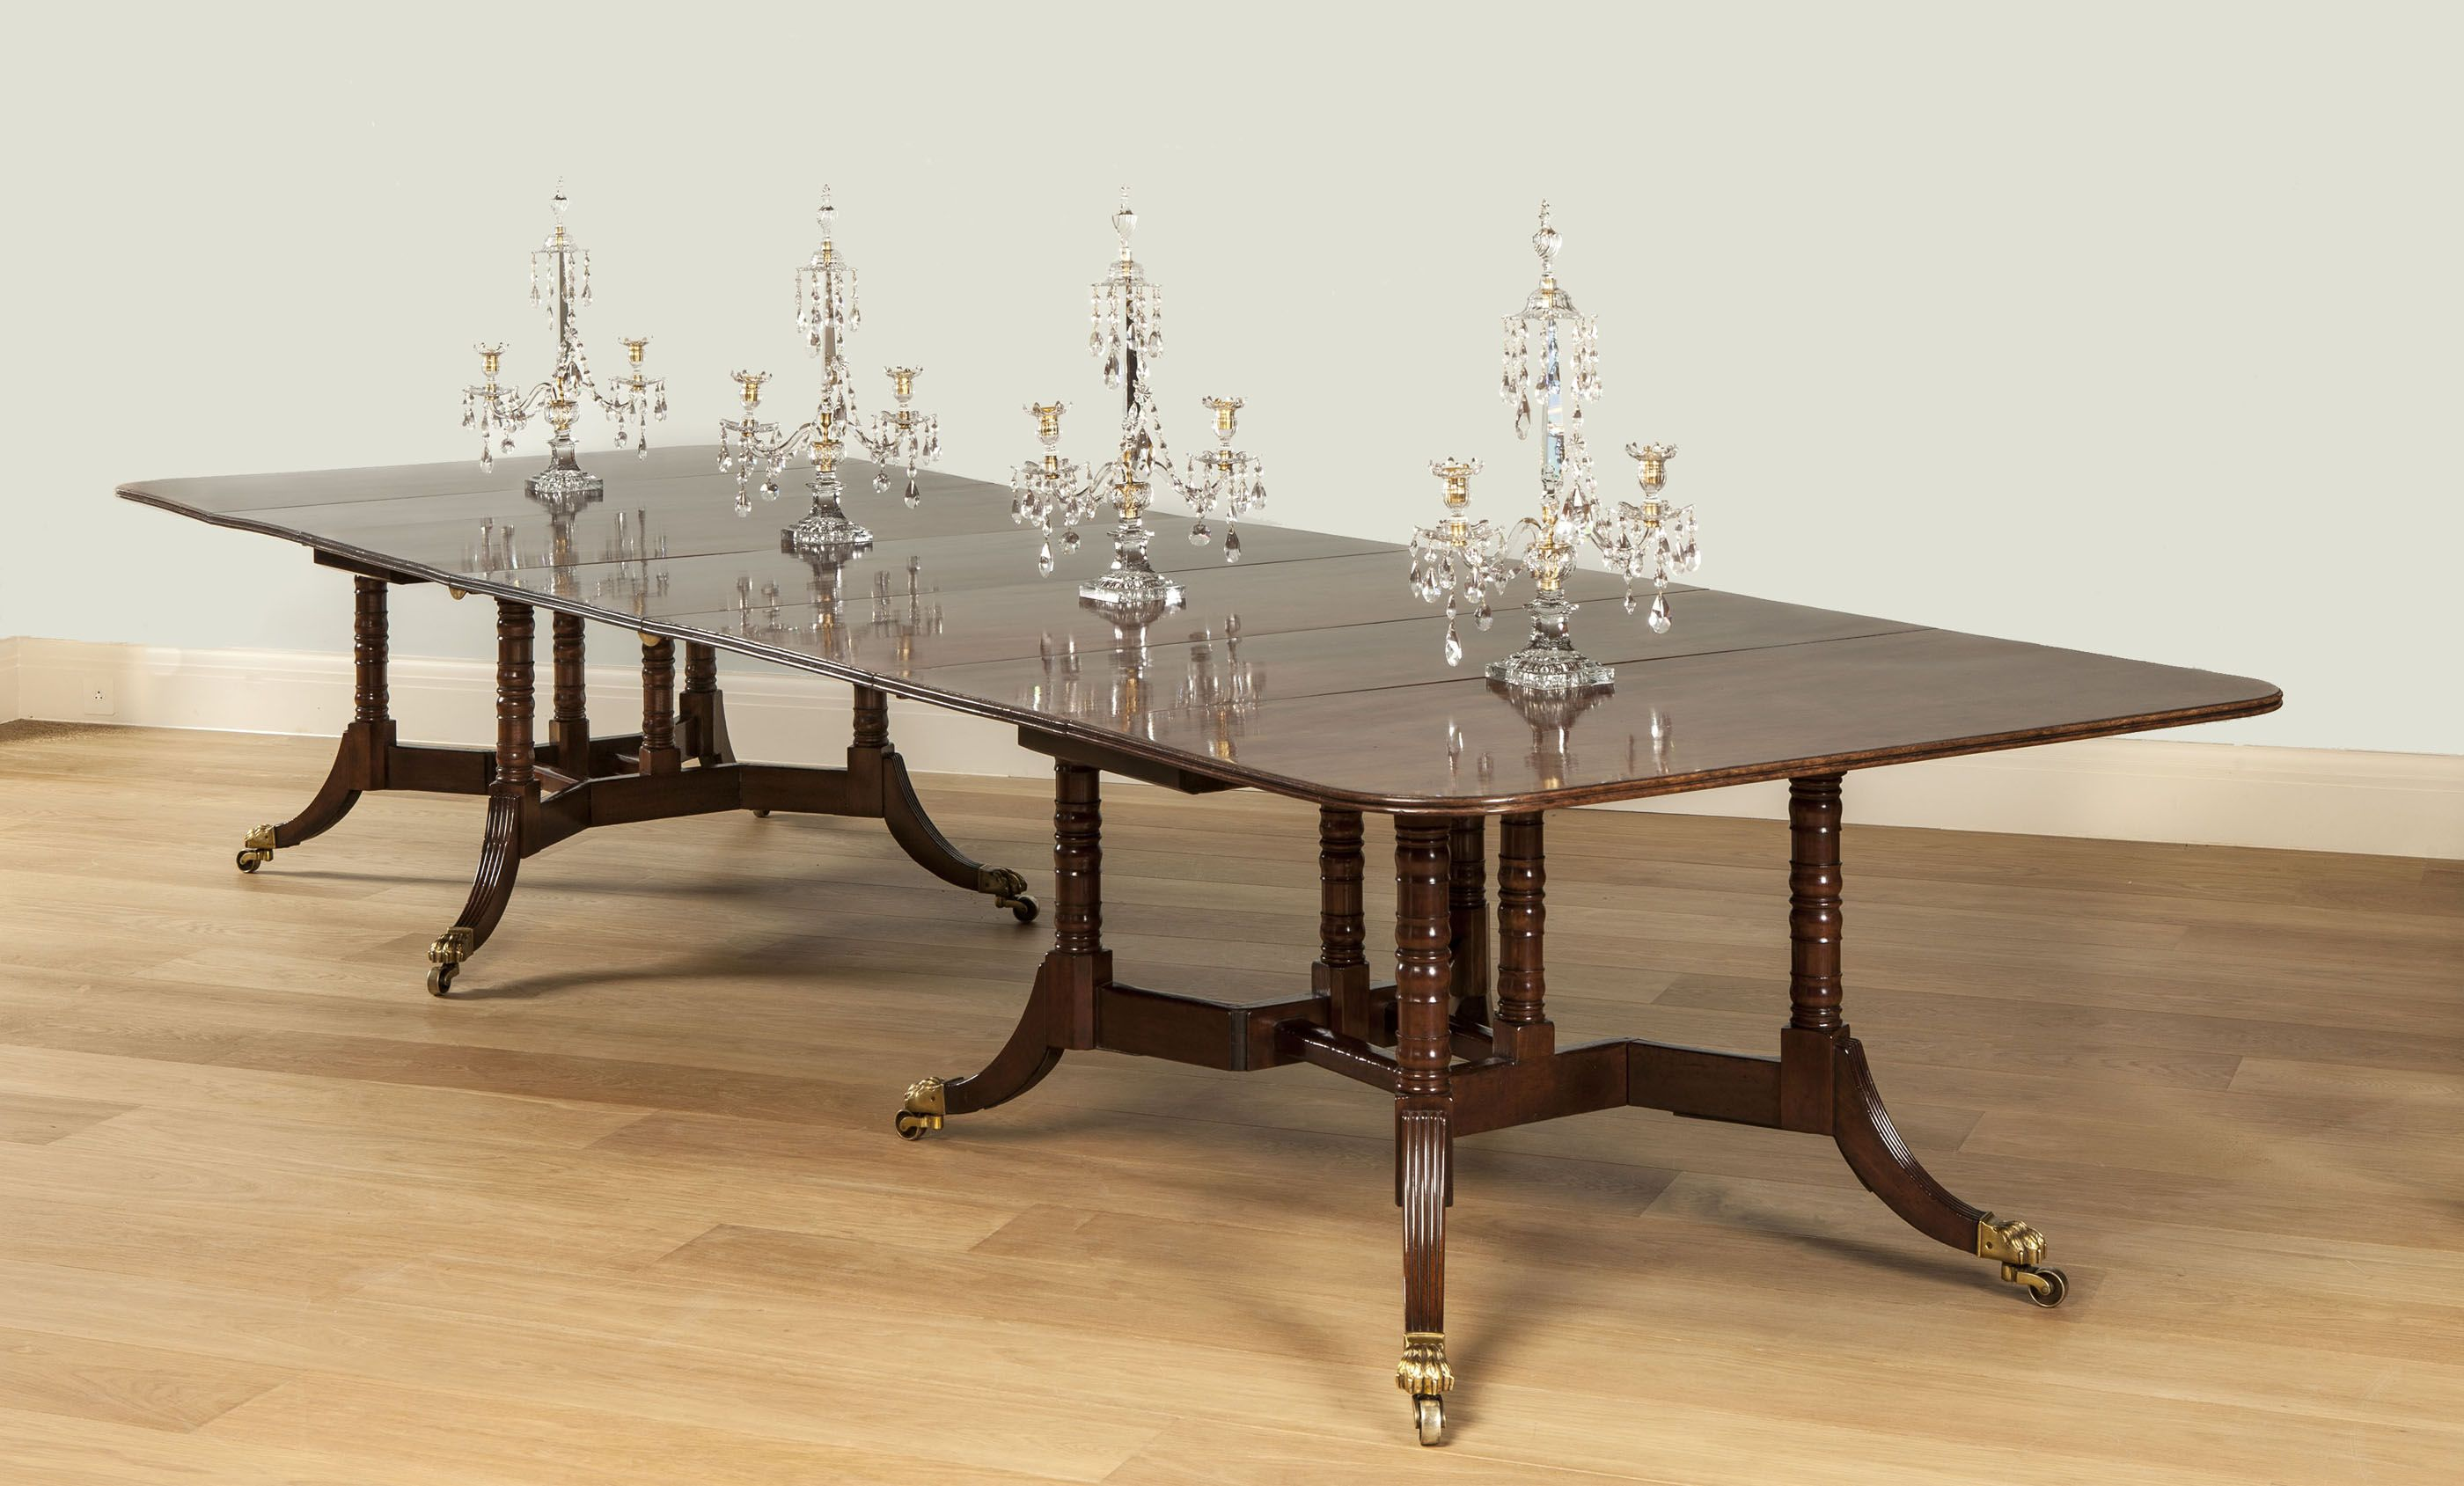 Antique wood dining tables a udouble cumberlandu antique dining table dating from about